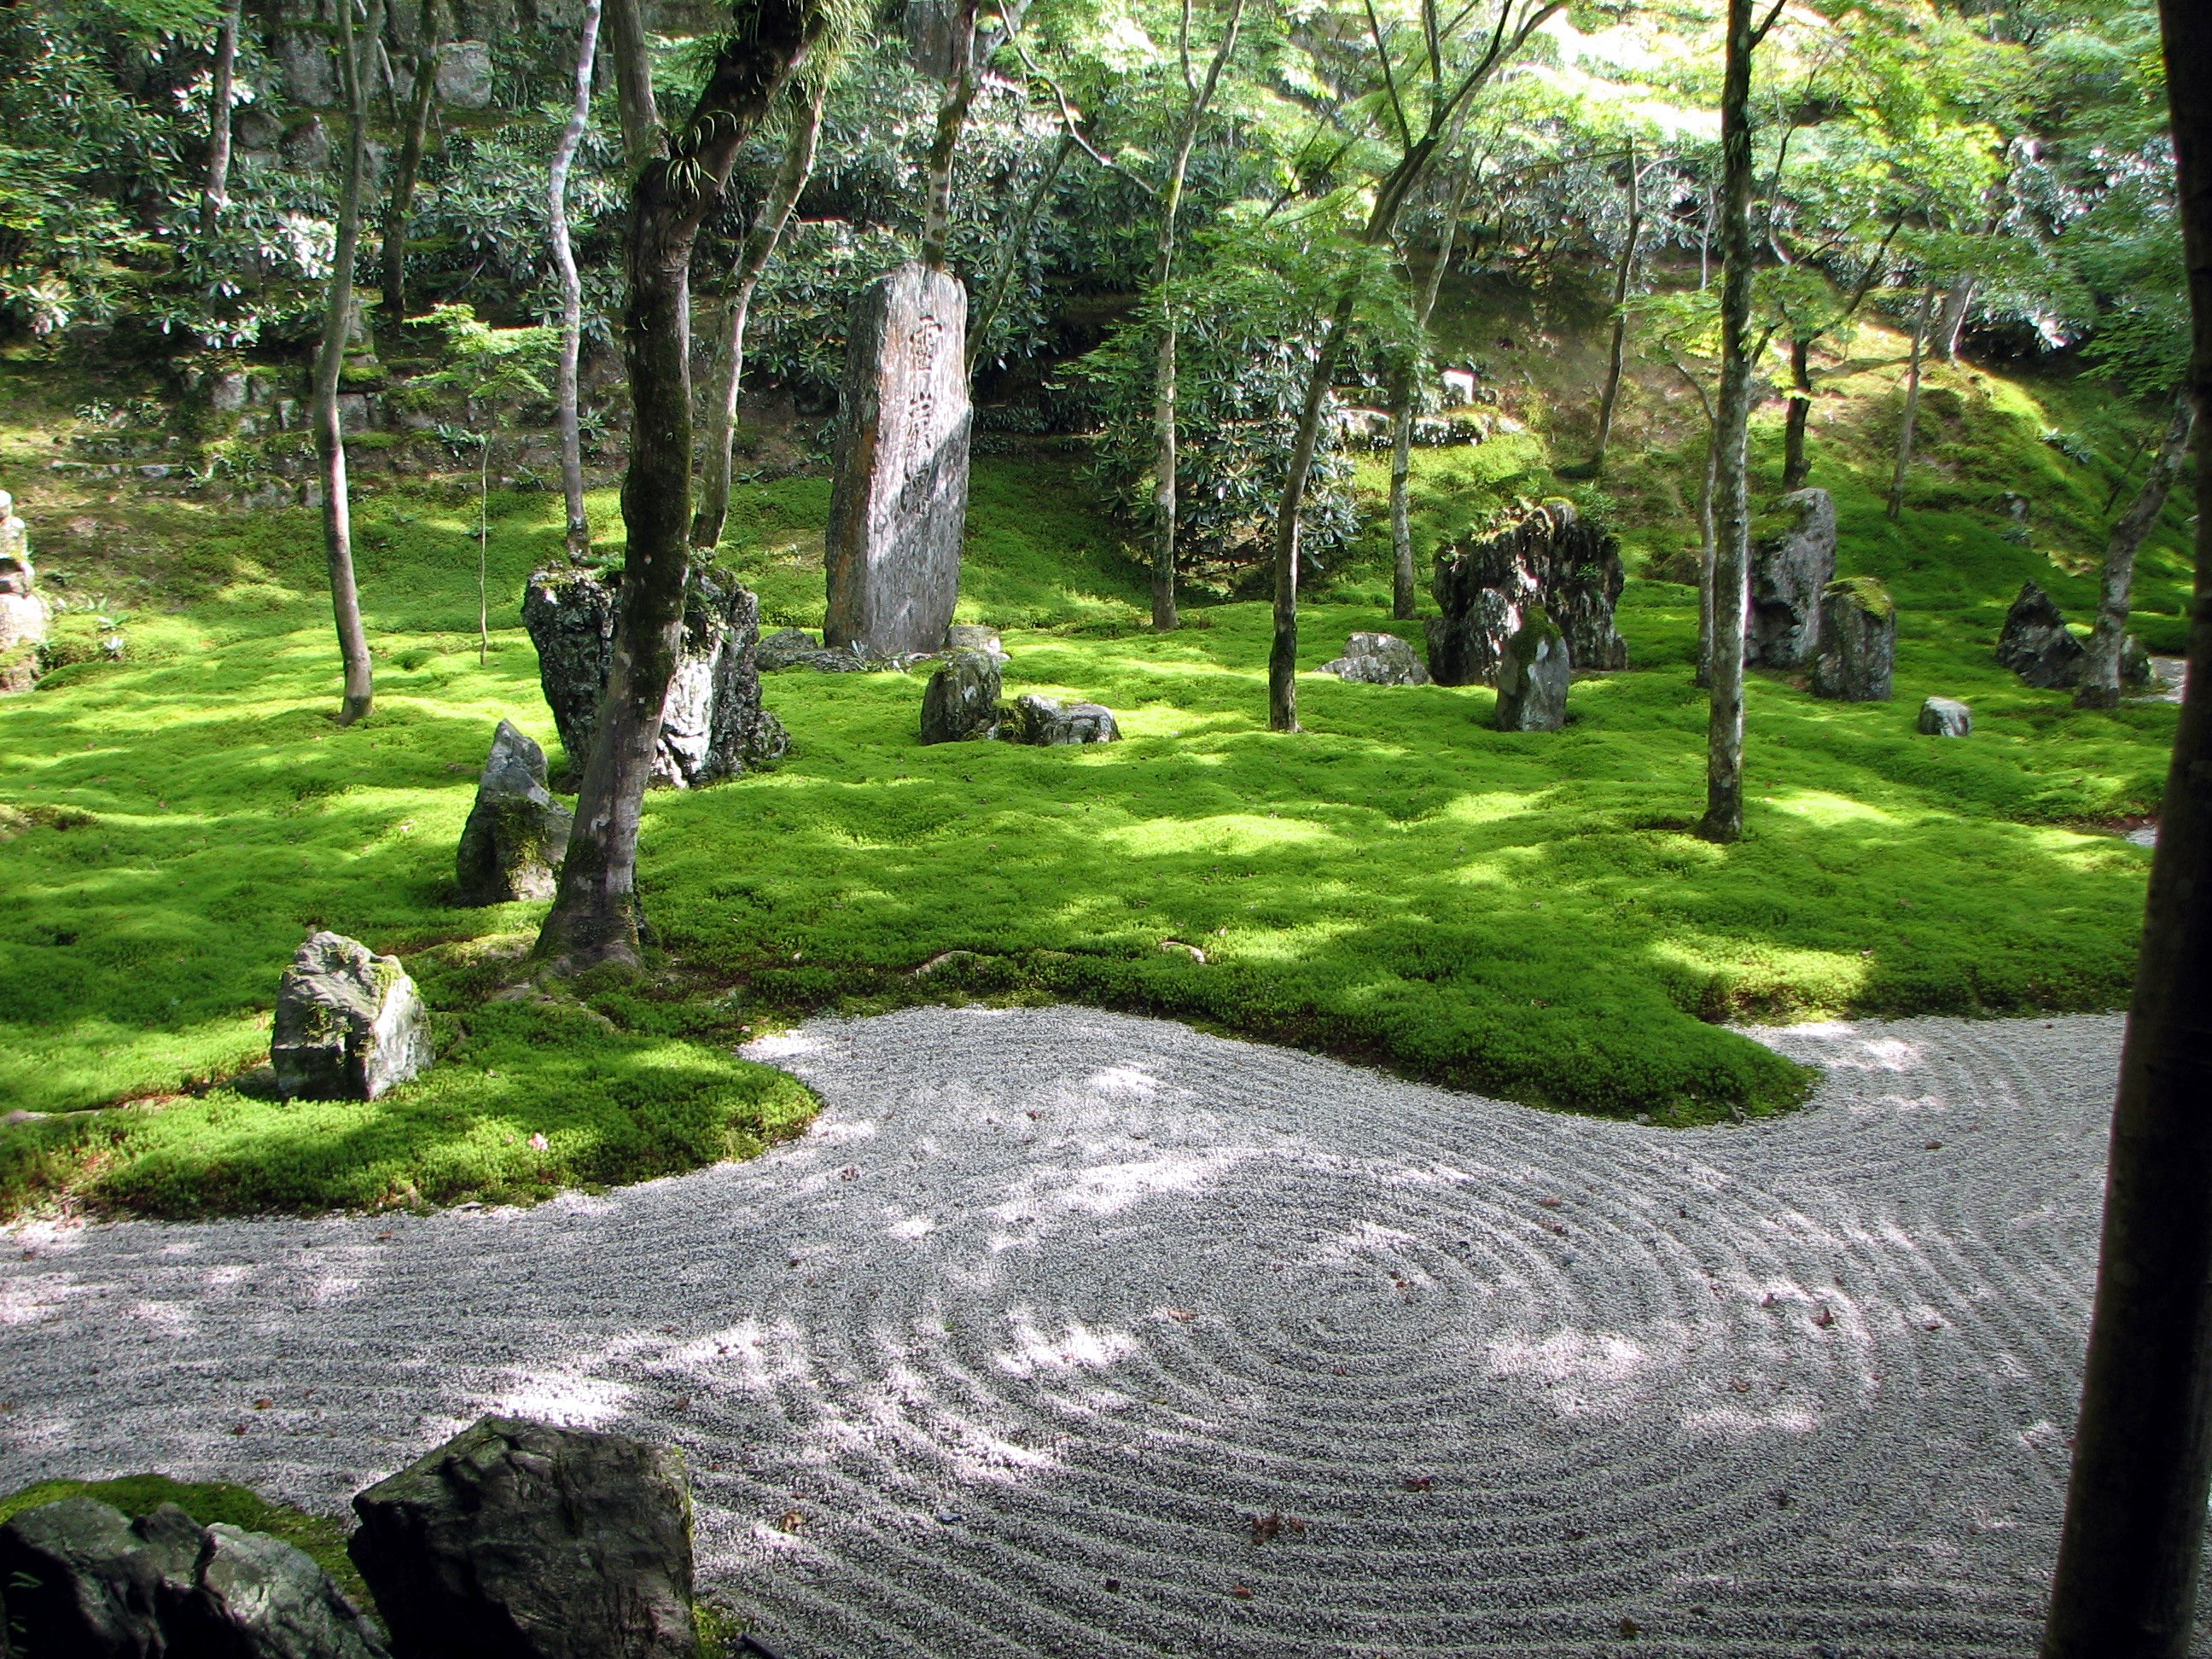 Koumyou Zenji Dazaifu Japan On Pinterest Zen Gardens: pictures of zen rock gardens